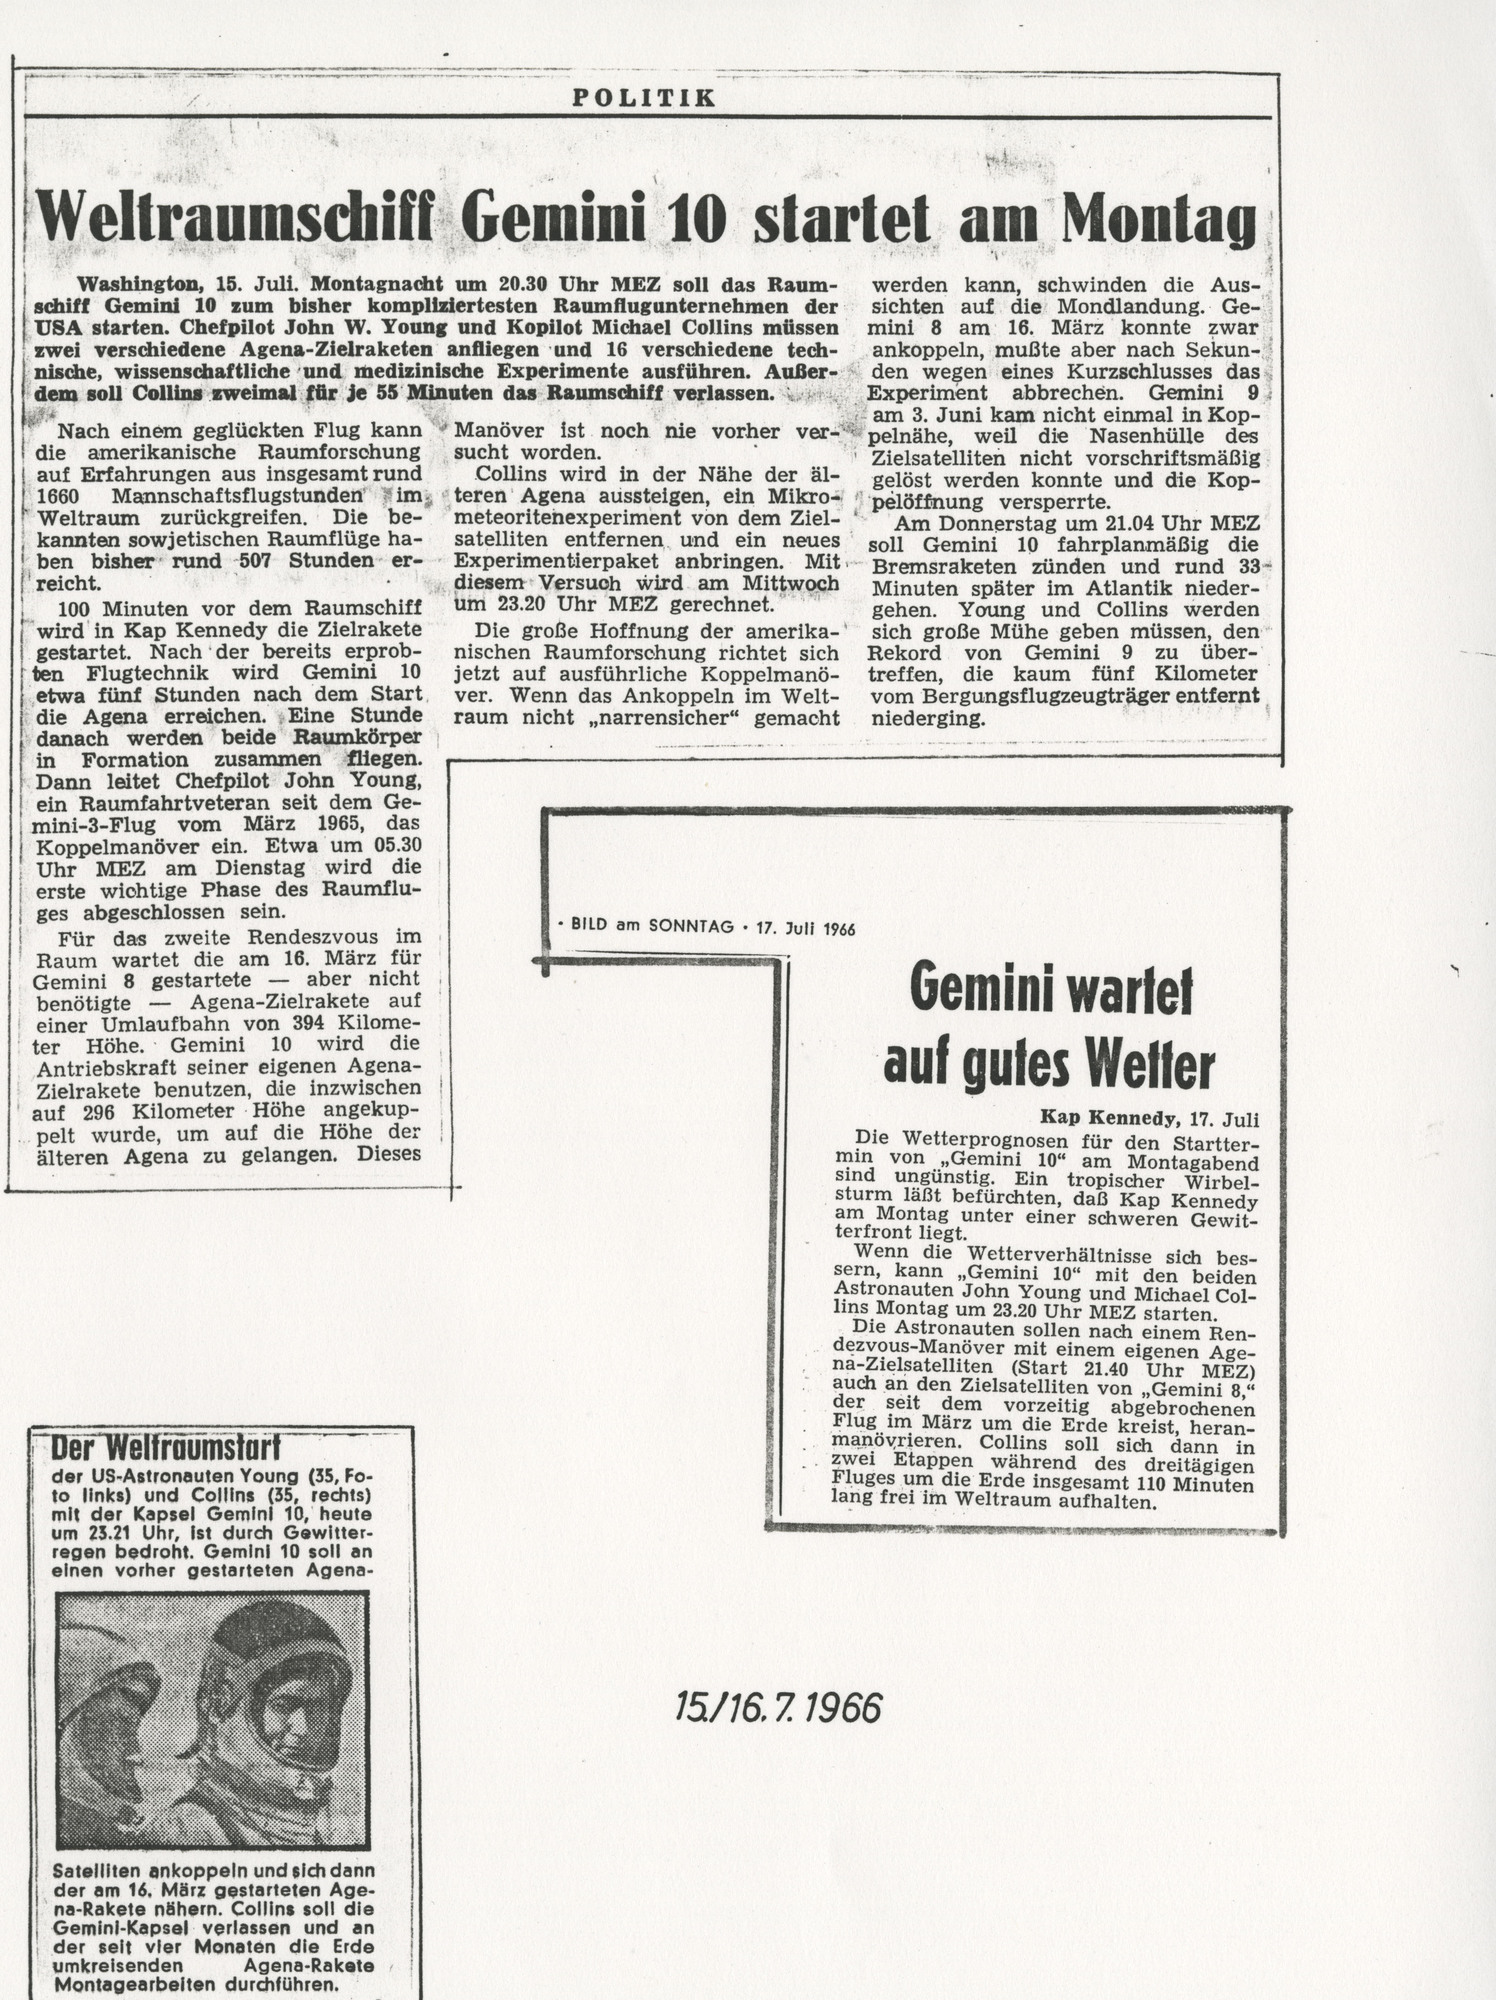 http://spec.lib.vt.edu/pickup/Omeka_upload/Ms1989-029_B07_F3_Clippings_1966_0715_01.jpg